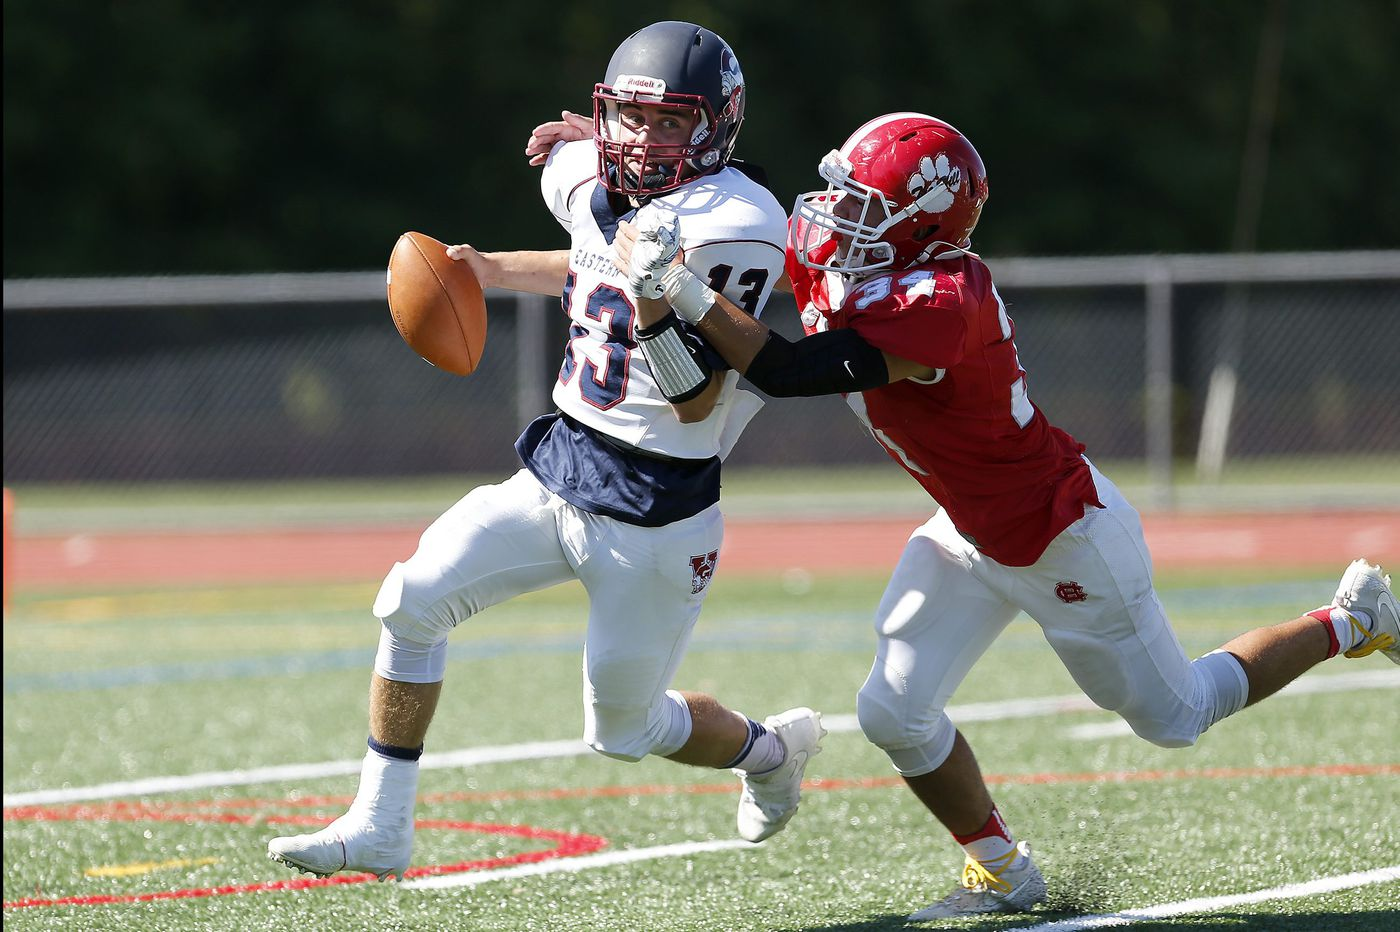 Eastern football set to take next step | South Jersey training camp preview